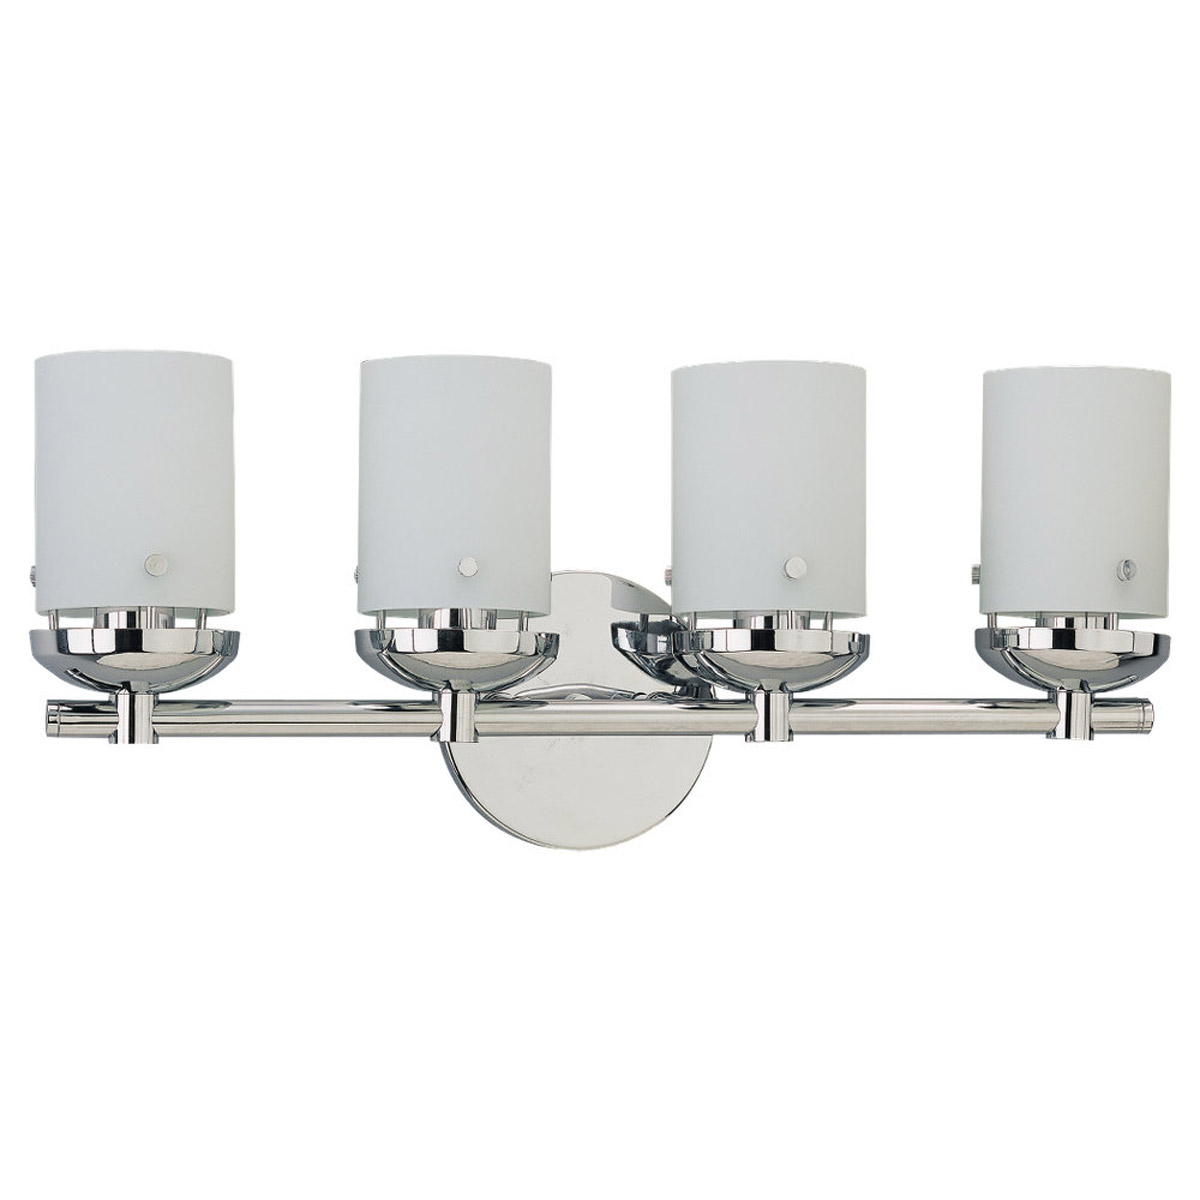 Sea Gull Lighting Bliss 4 Light Bath Vanity in Chrome 40046-05 photo